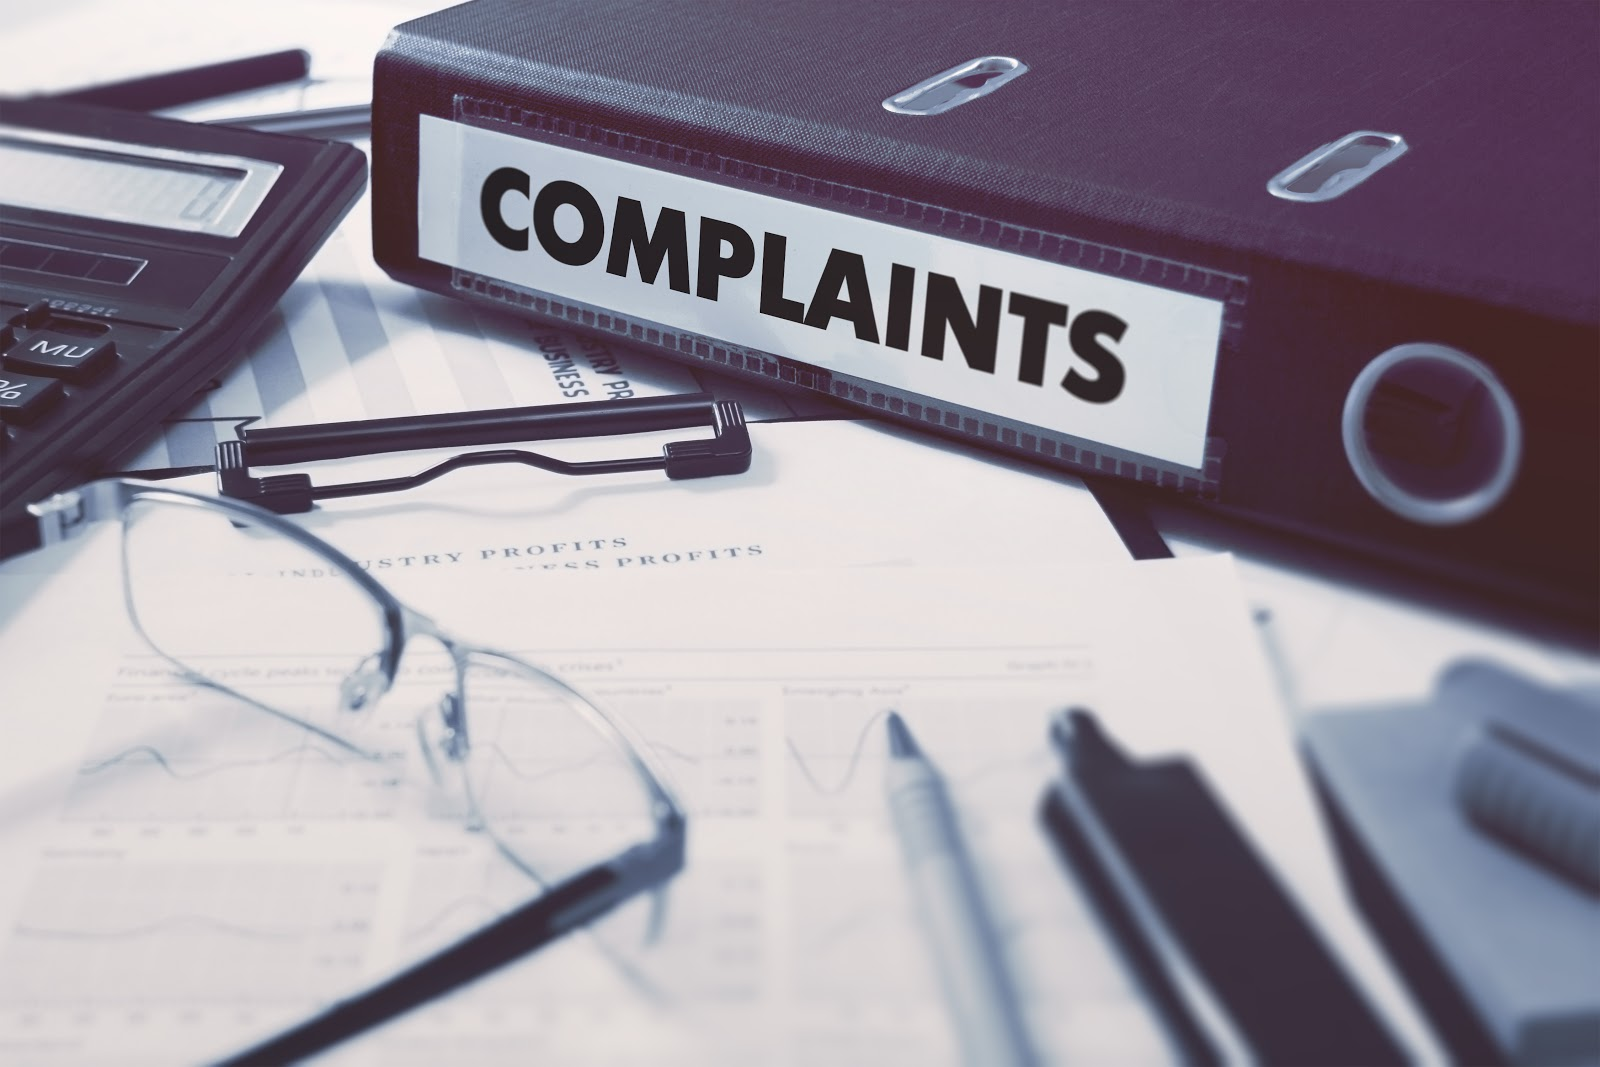 complaints file on a stack of forms